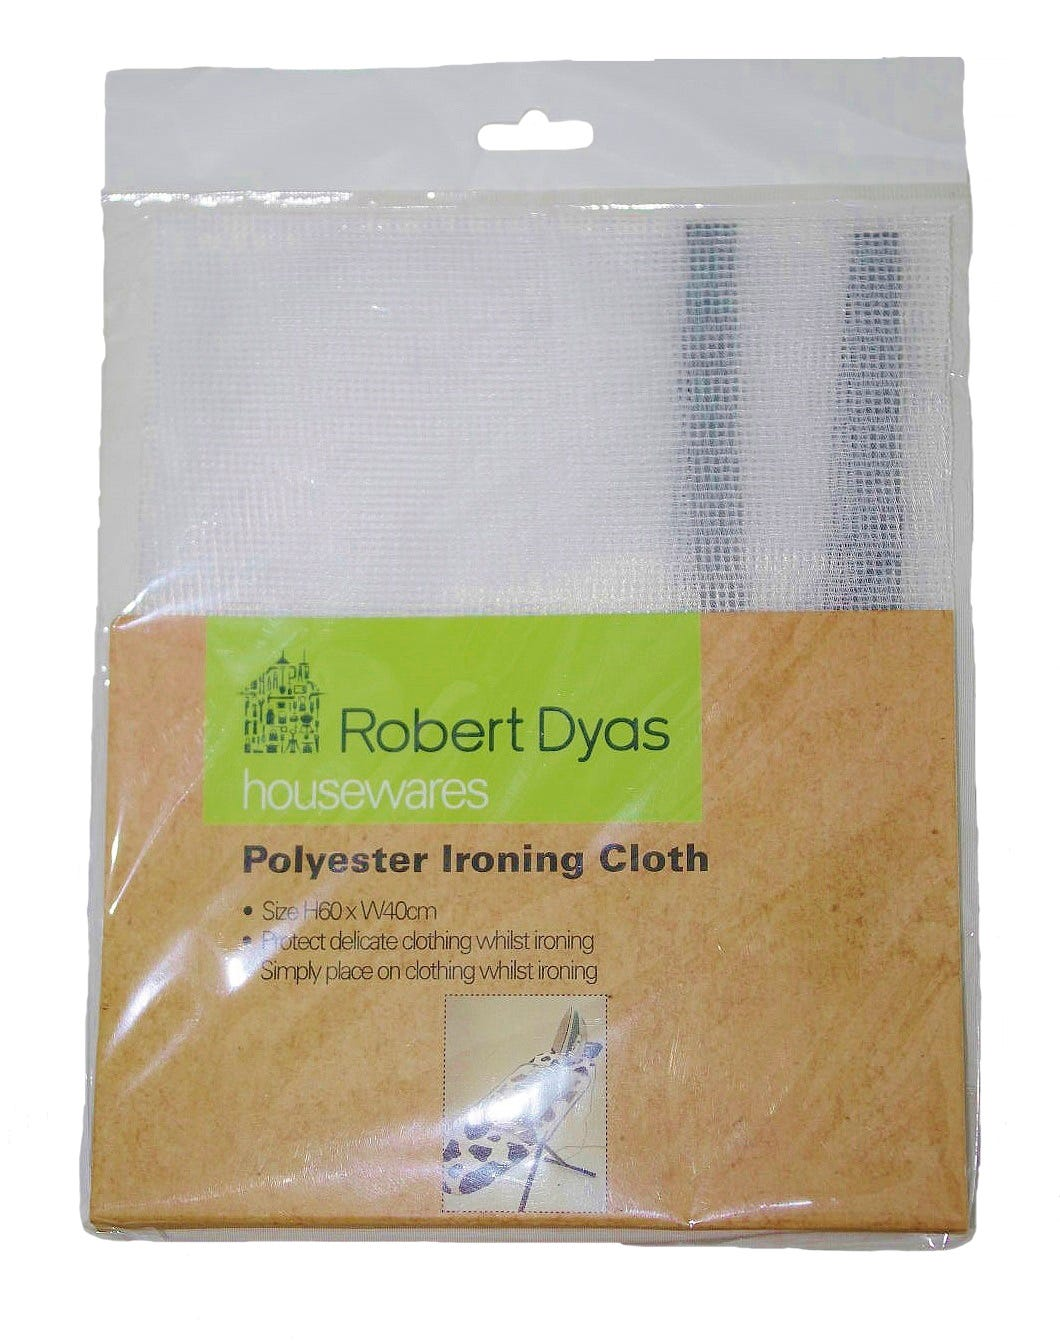 Robert Dyas/Cleaning & Decorating/Cleaning Power/Robert Dyas Ironing Cloth